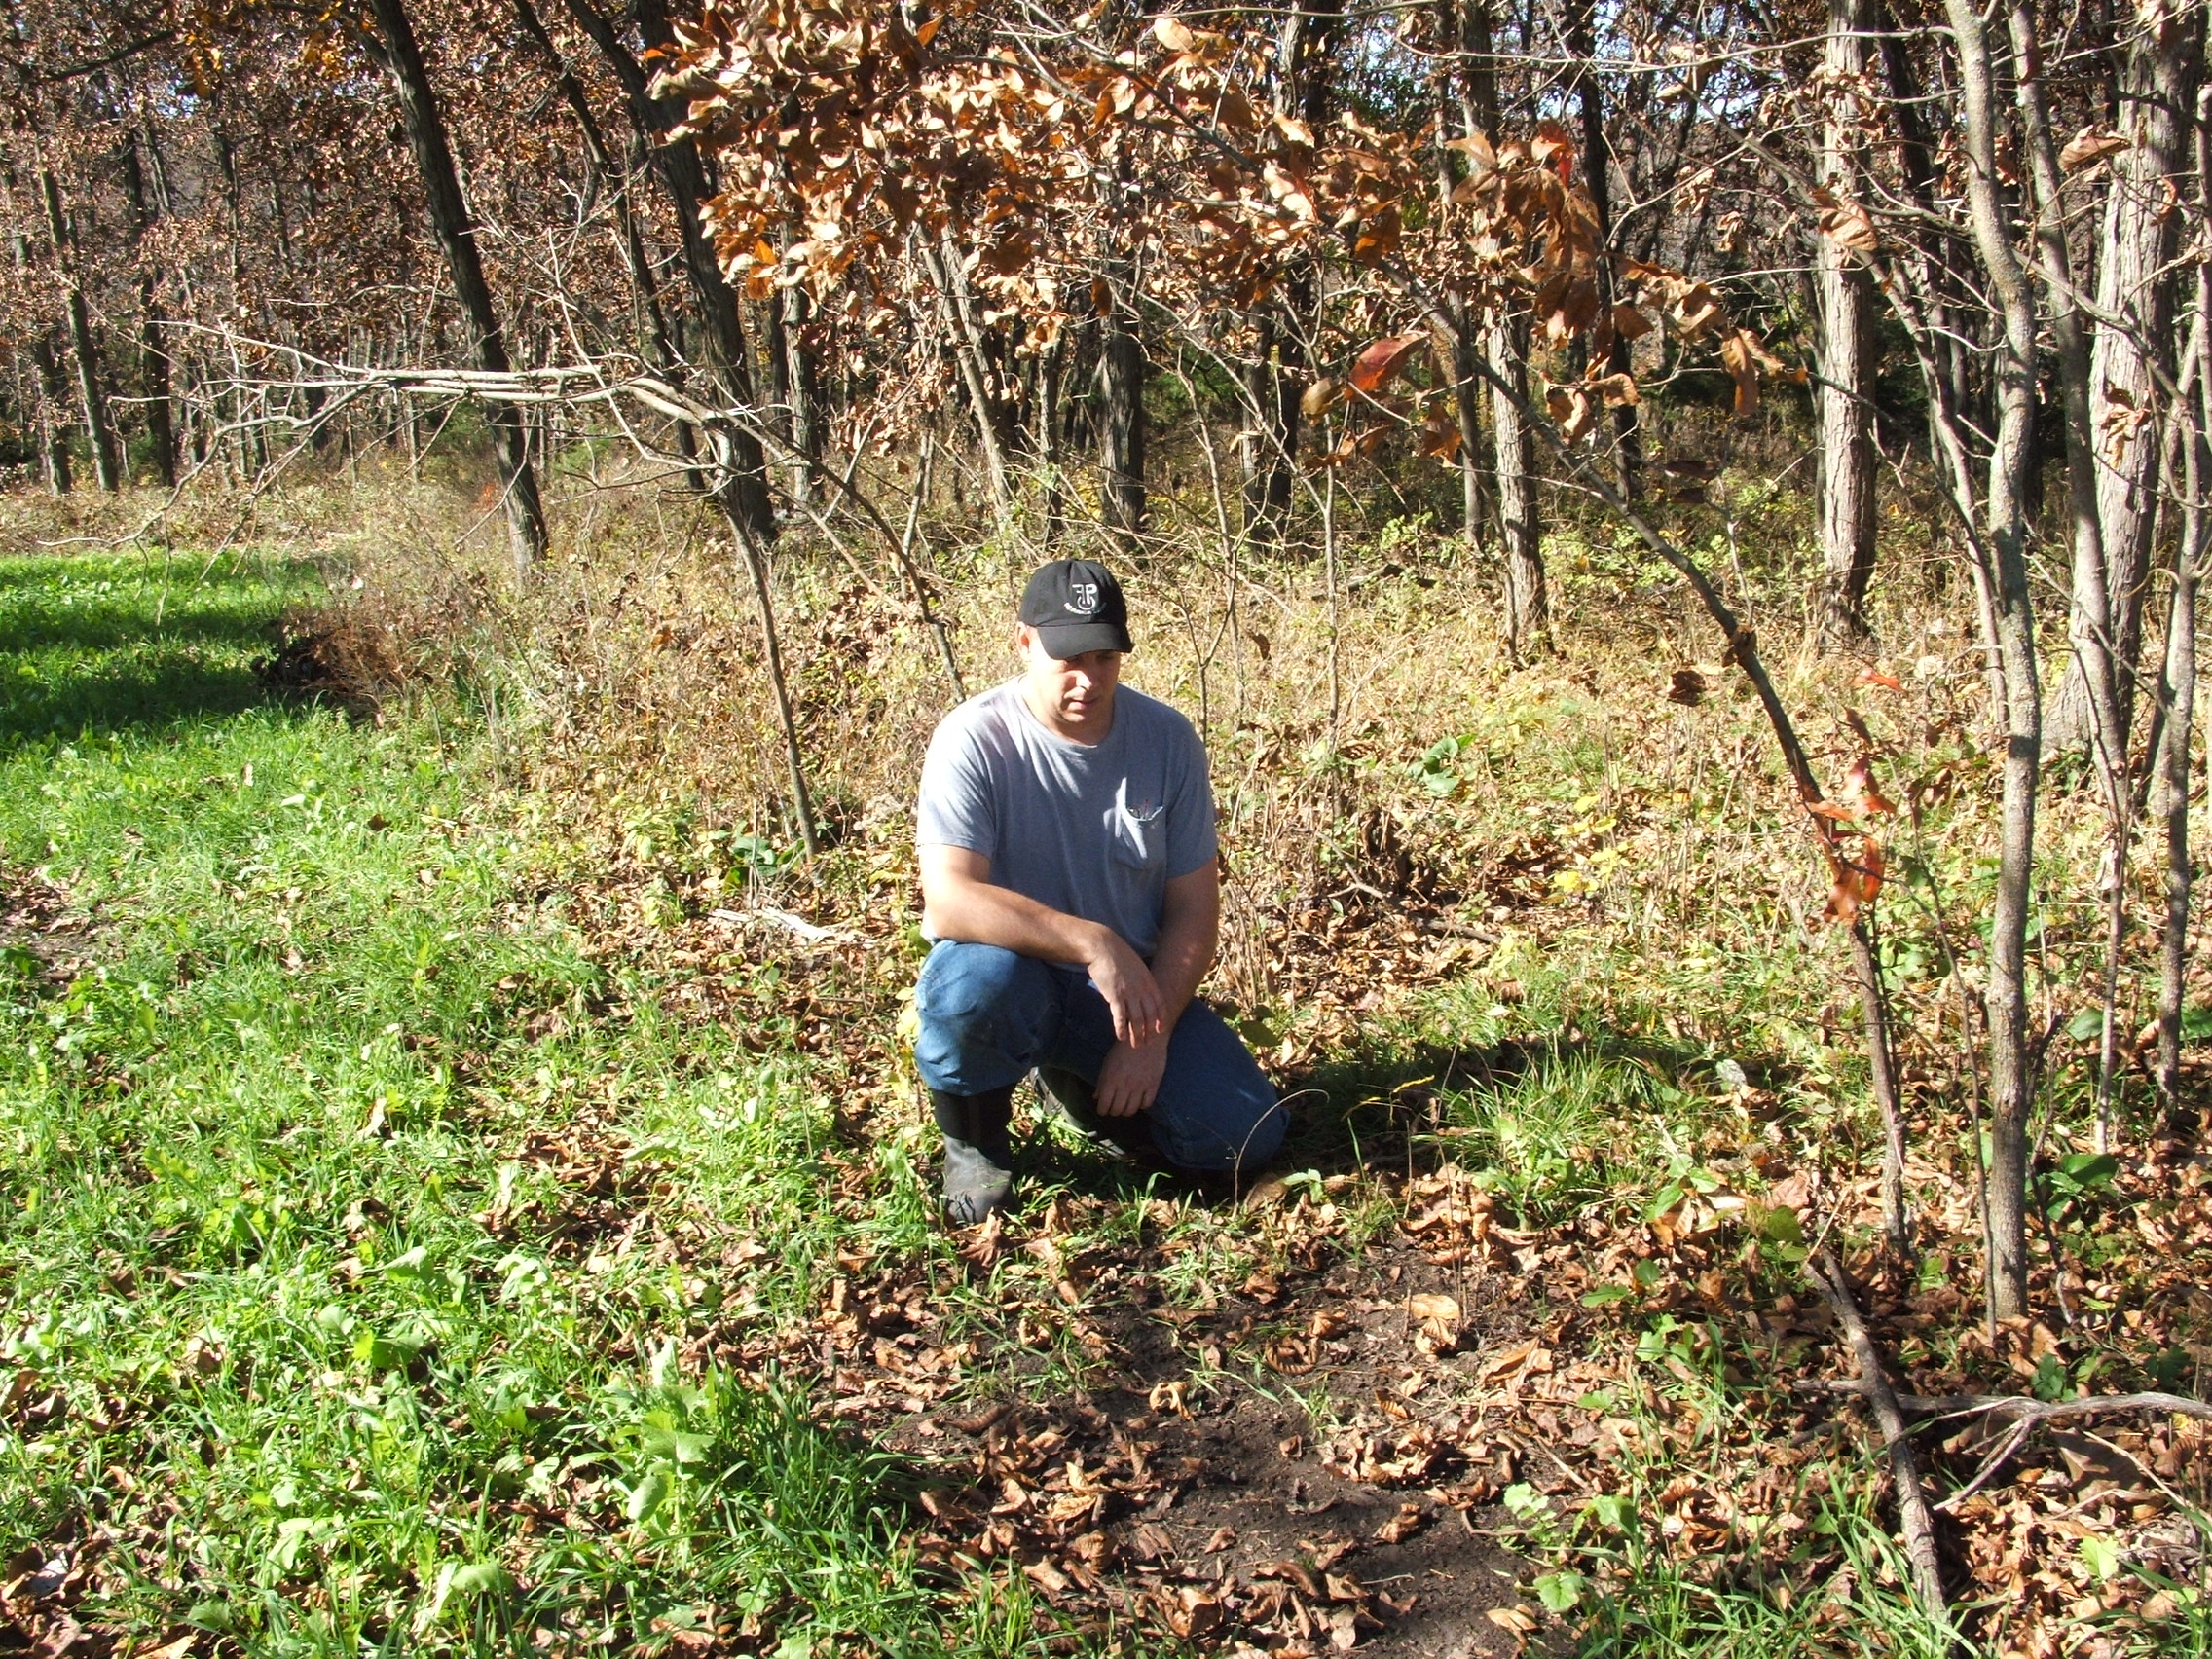 Gaining access to a farm/land that holds the type of deer you want to hunt...or better yet one that you can manage to achieve your goals is where any hunter should start . Without access, there is a good chance of going year after year feeling frustrated in your hunting season.